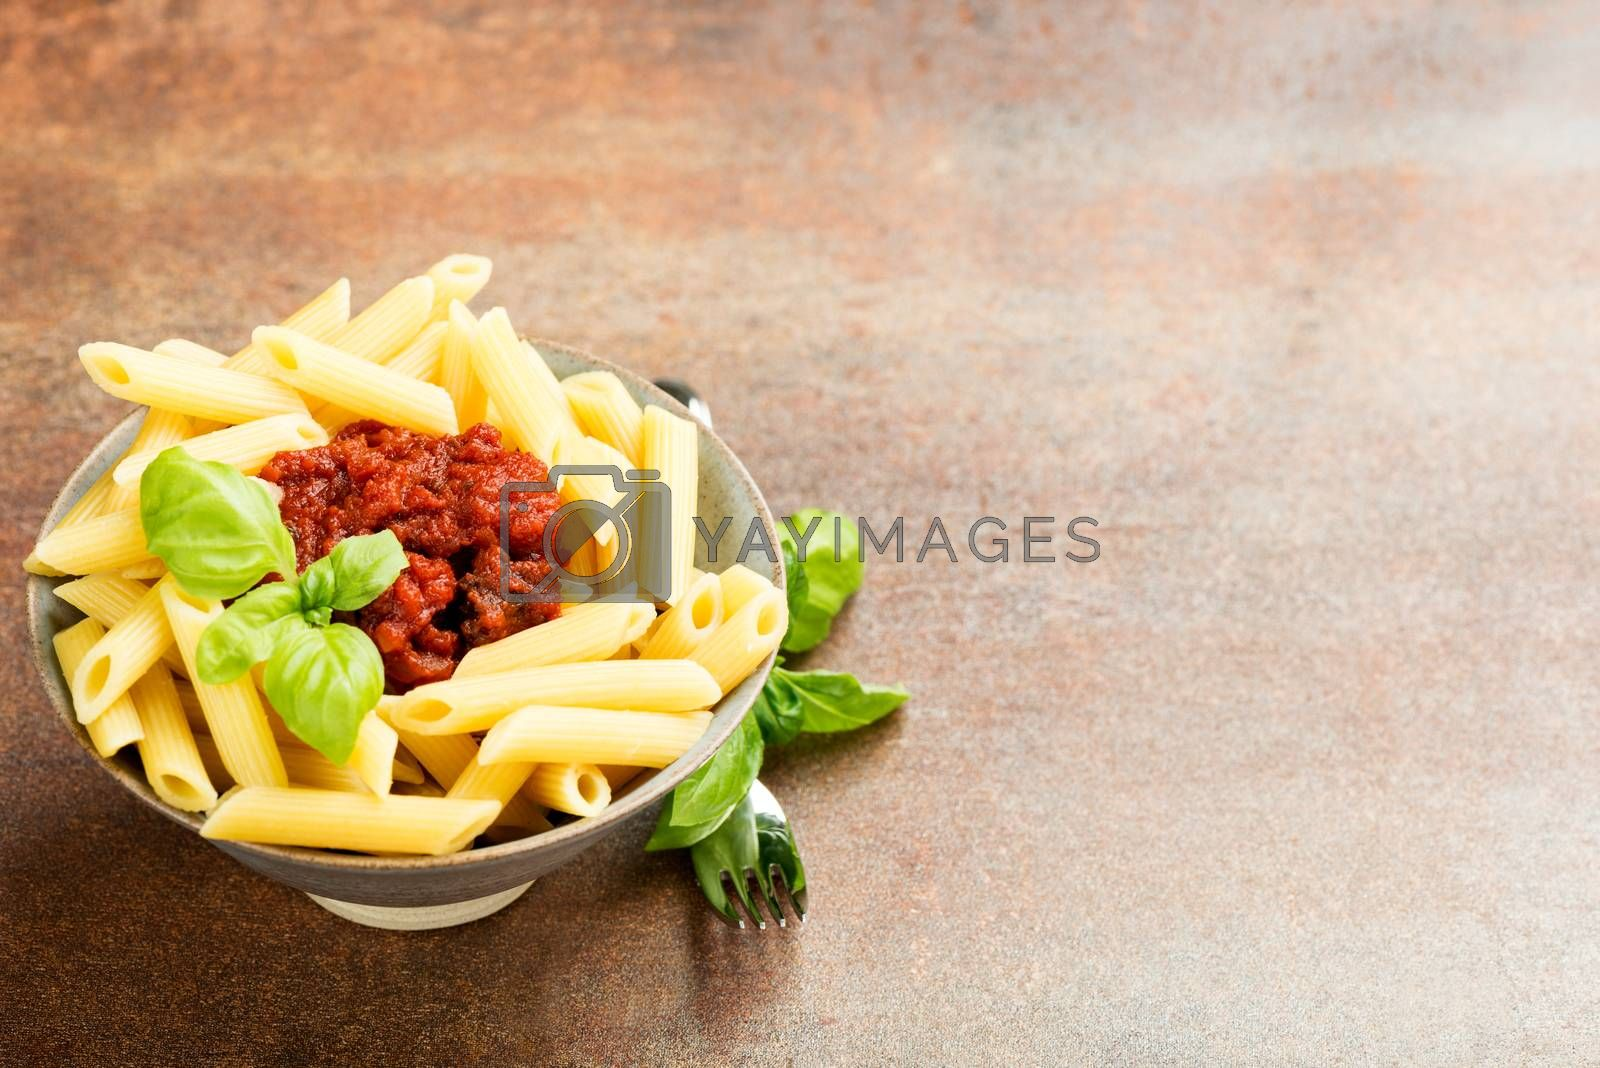 Penne pasta with a tomato bolognese beef sauce by Nanisimova